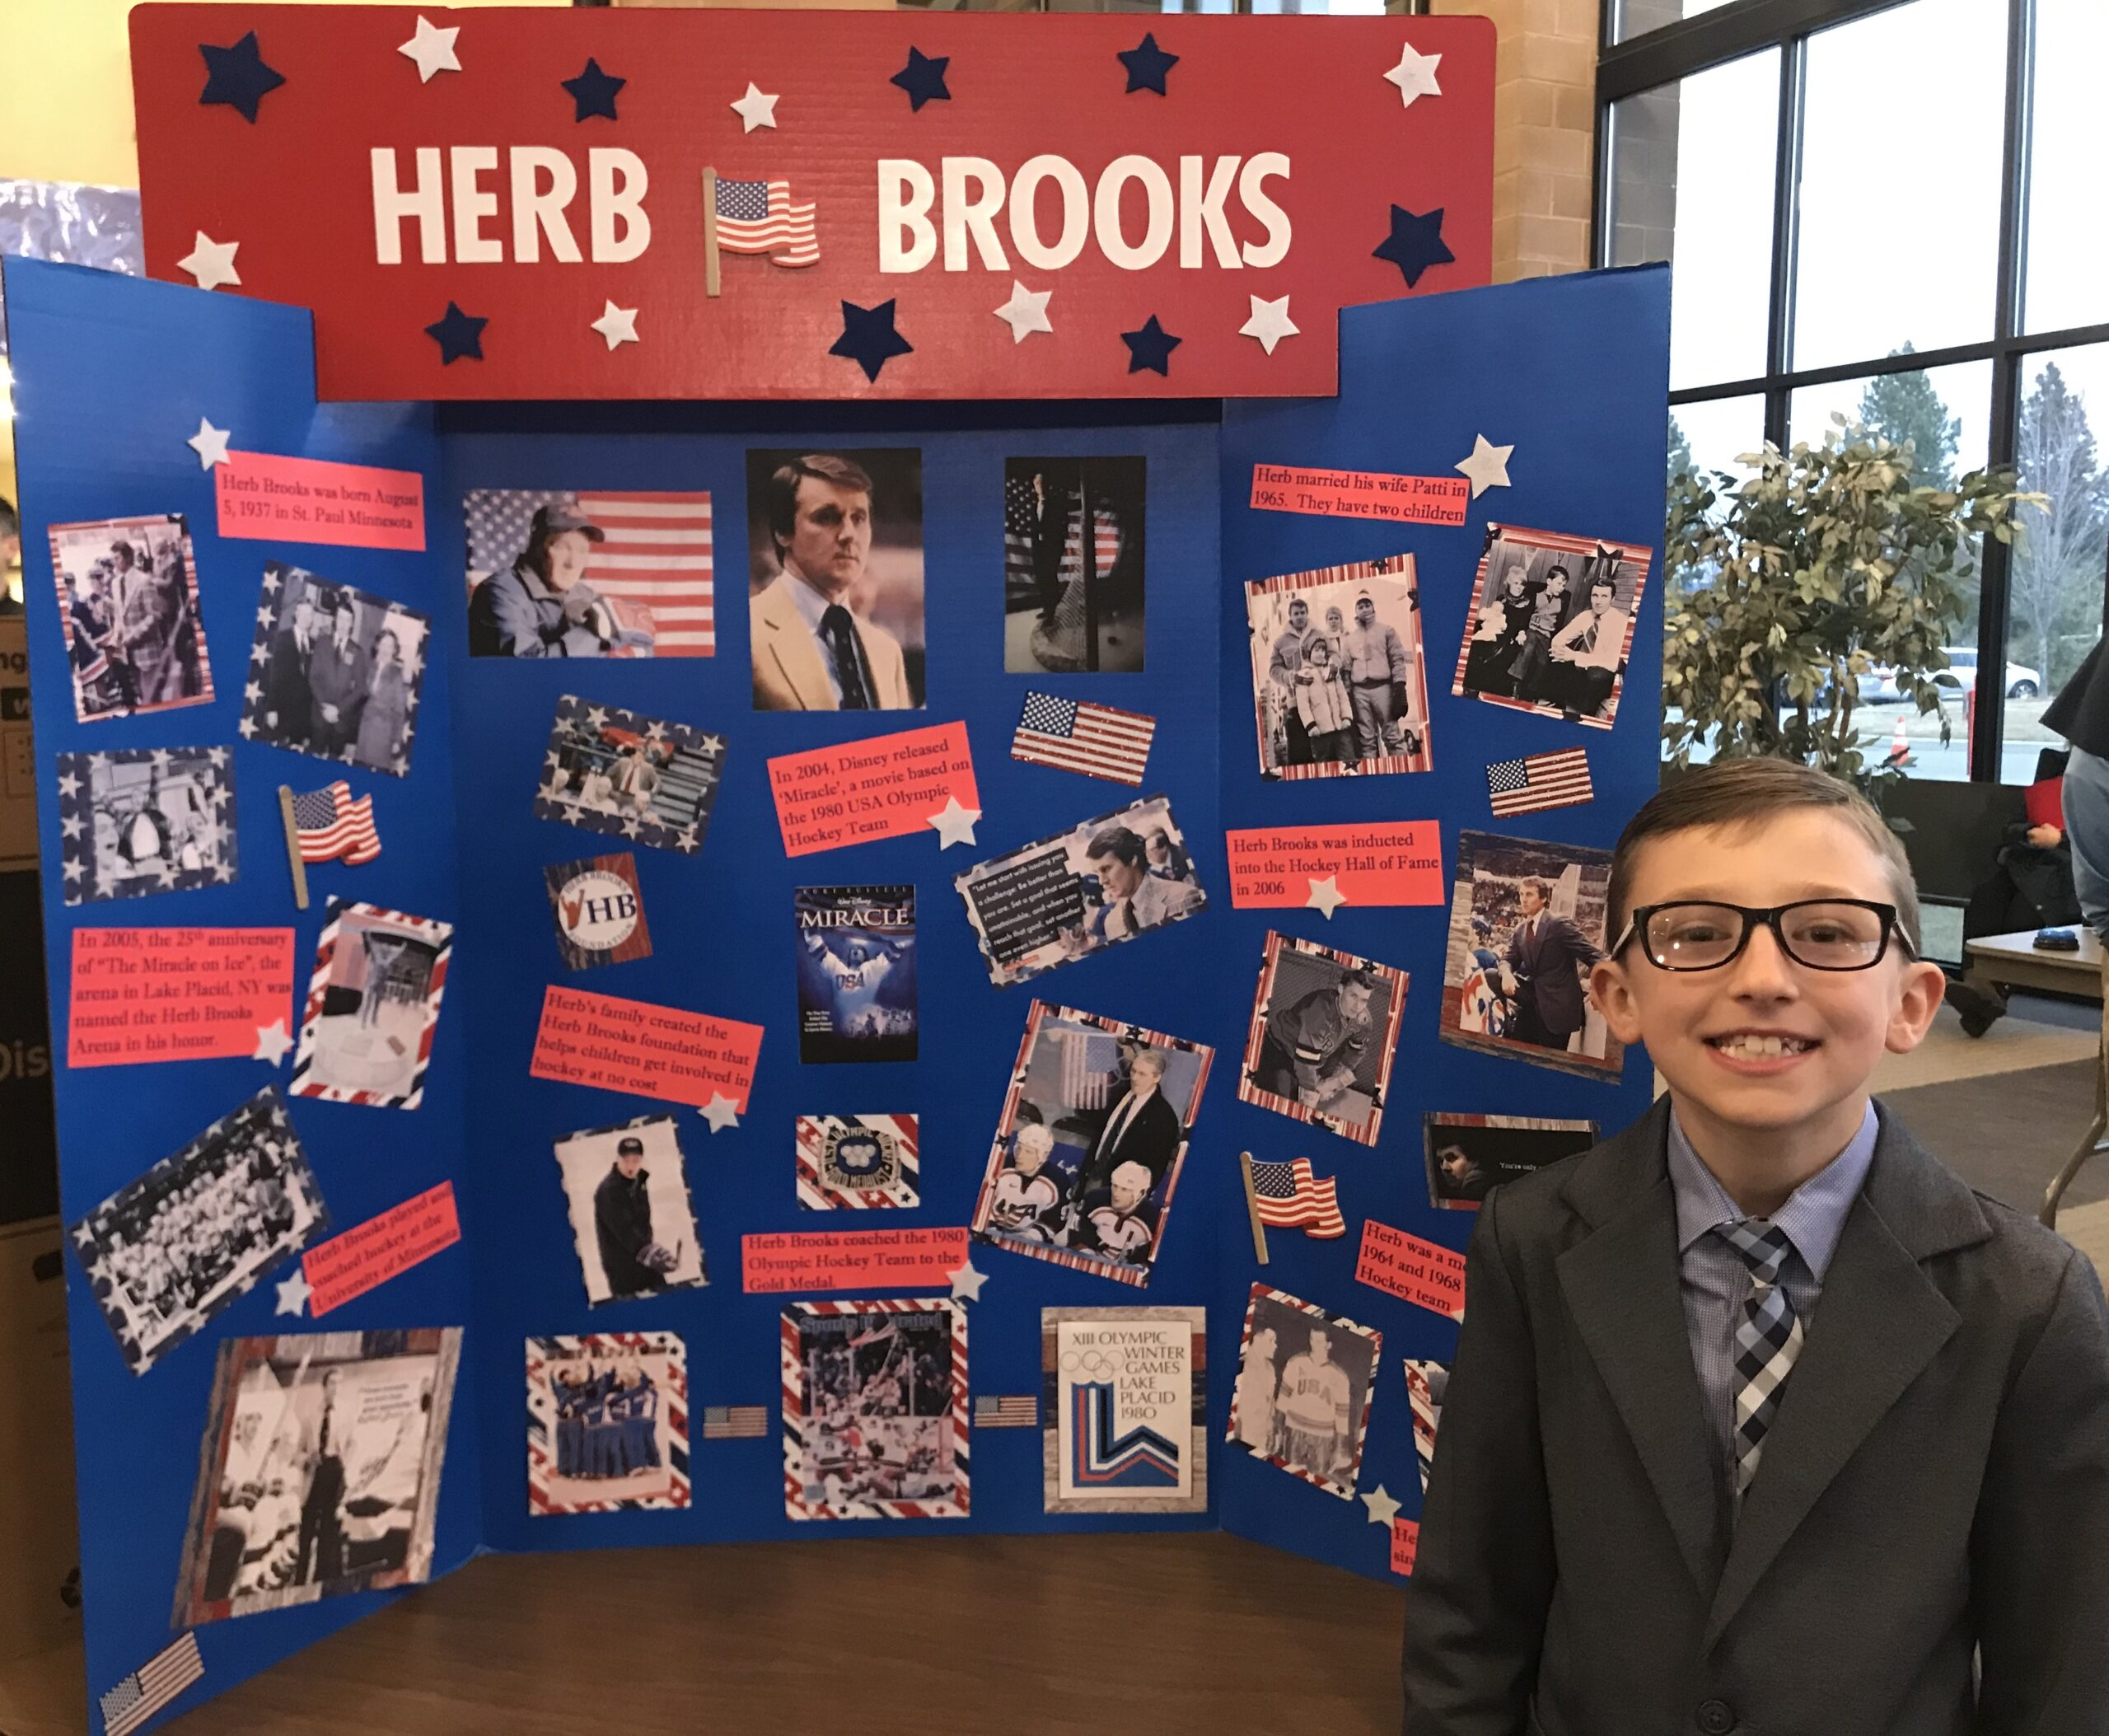 """Matthew, a student from Palisades Christian Academy in Spokane, Washington, chose Herb Brooks for his """"American Hero"""" school project. Matthew presented at the """"American Wax Museum Open House"""" where people would press a button, and he would """"come to life"""" as Herb Brooks relaying facts."""